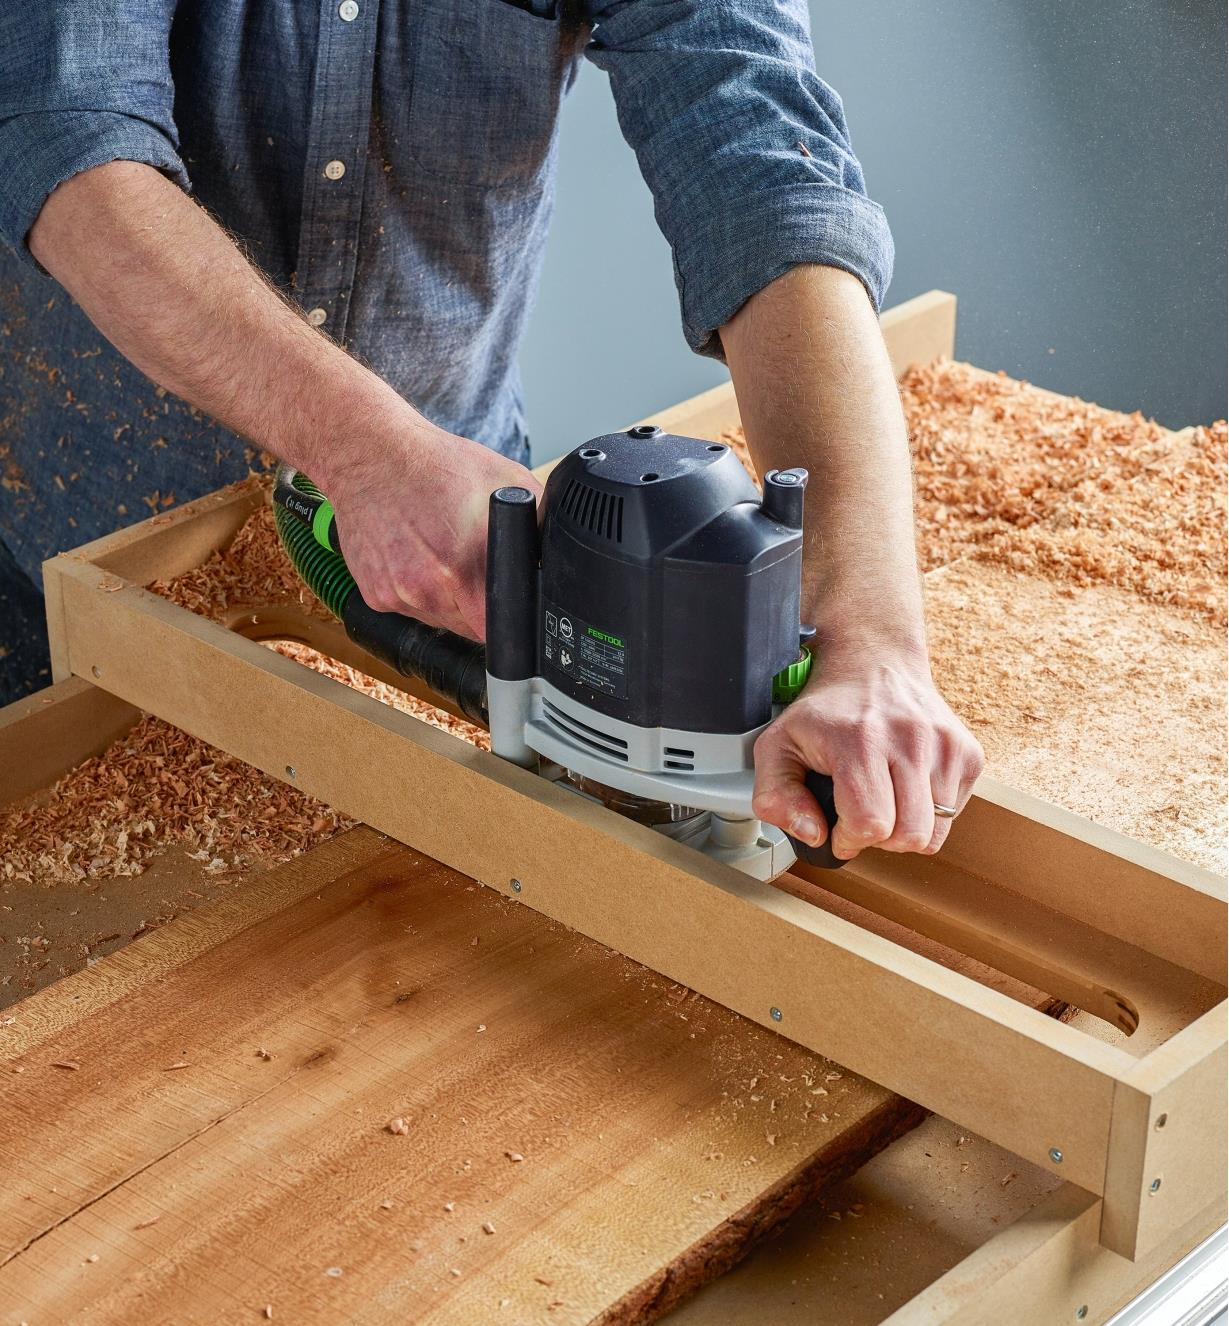 Used with a router sled, a router with a flattening bit is passed across a wood slab to flatten it